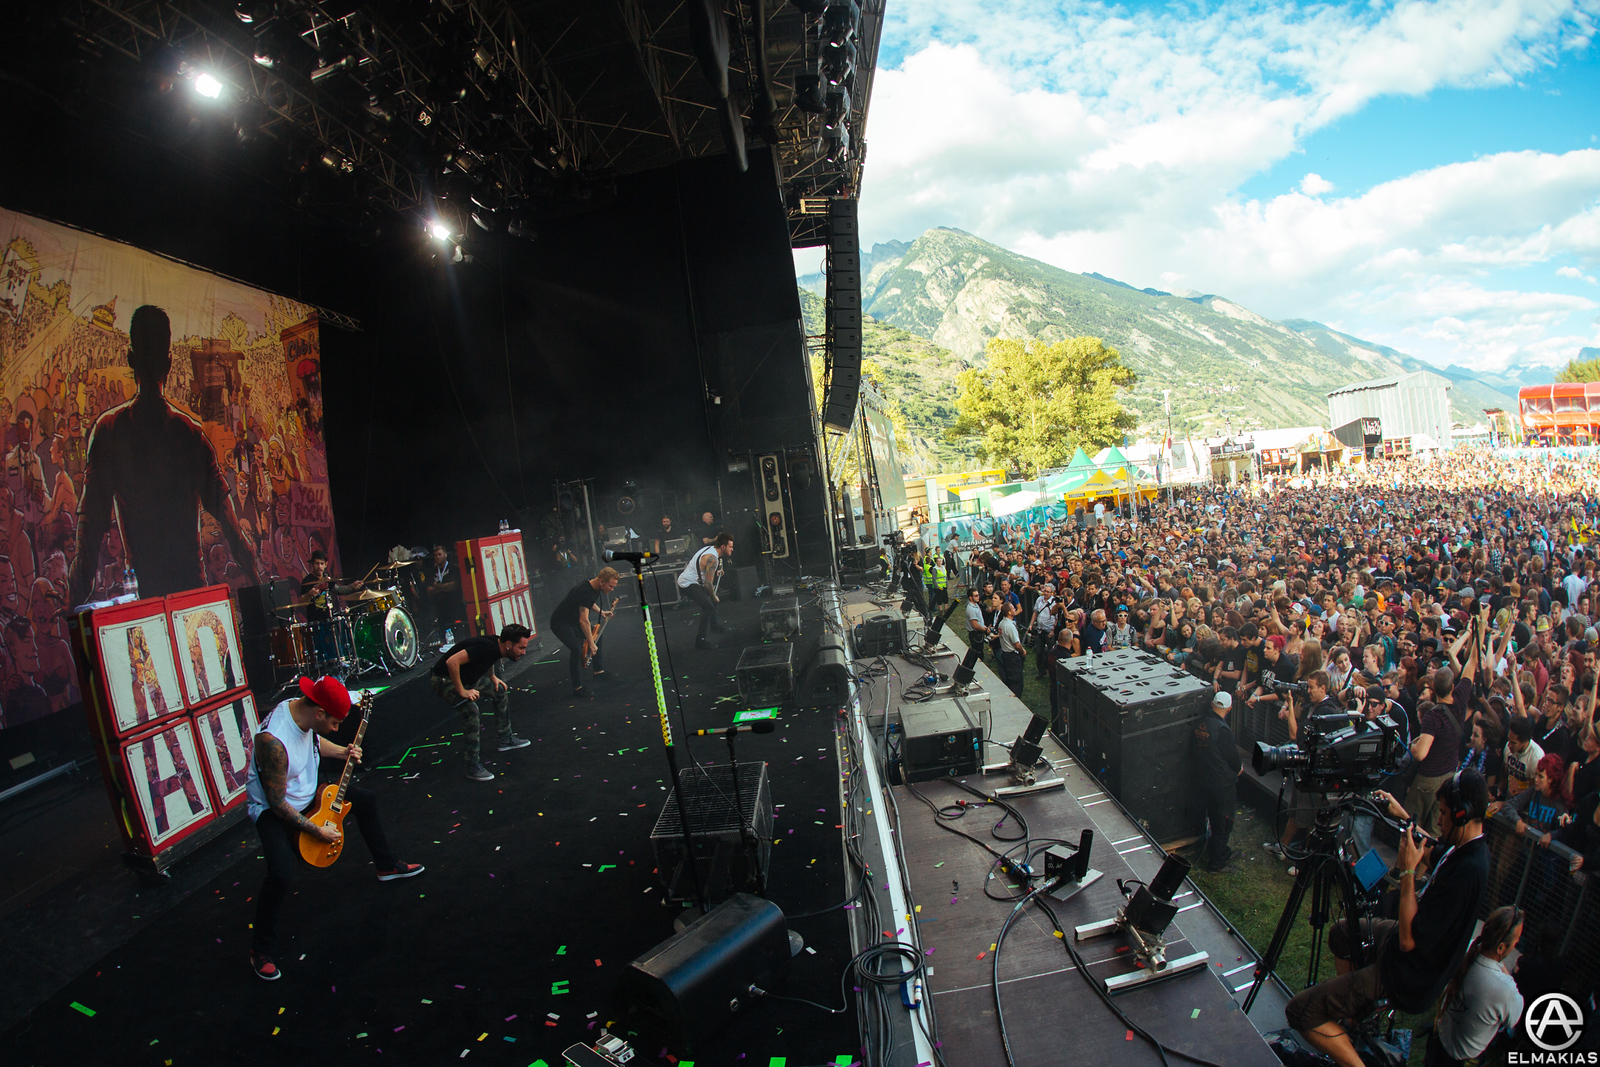 team headbang at Open Air Gampel Festival in Switzerland